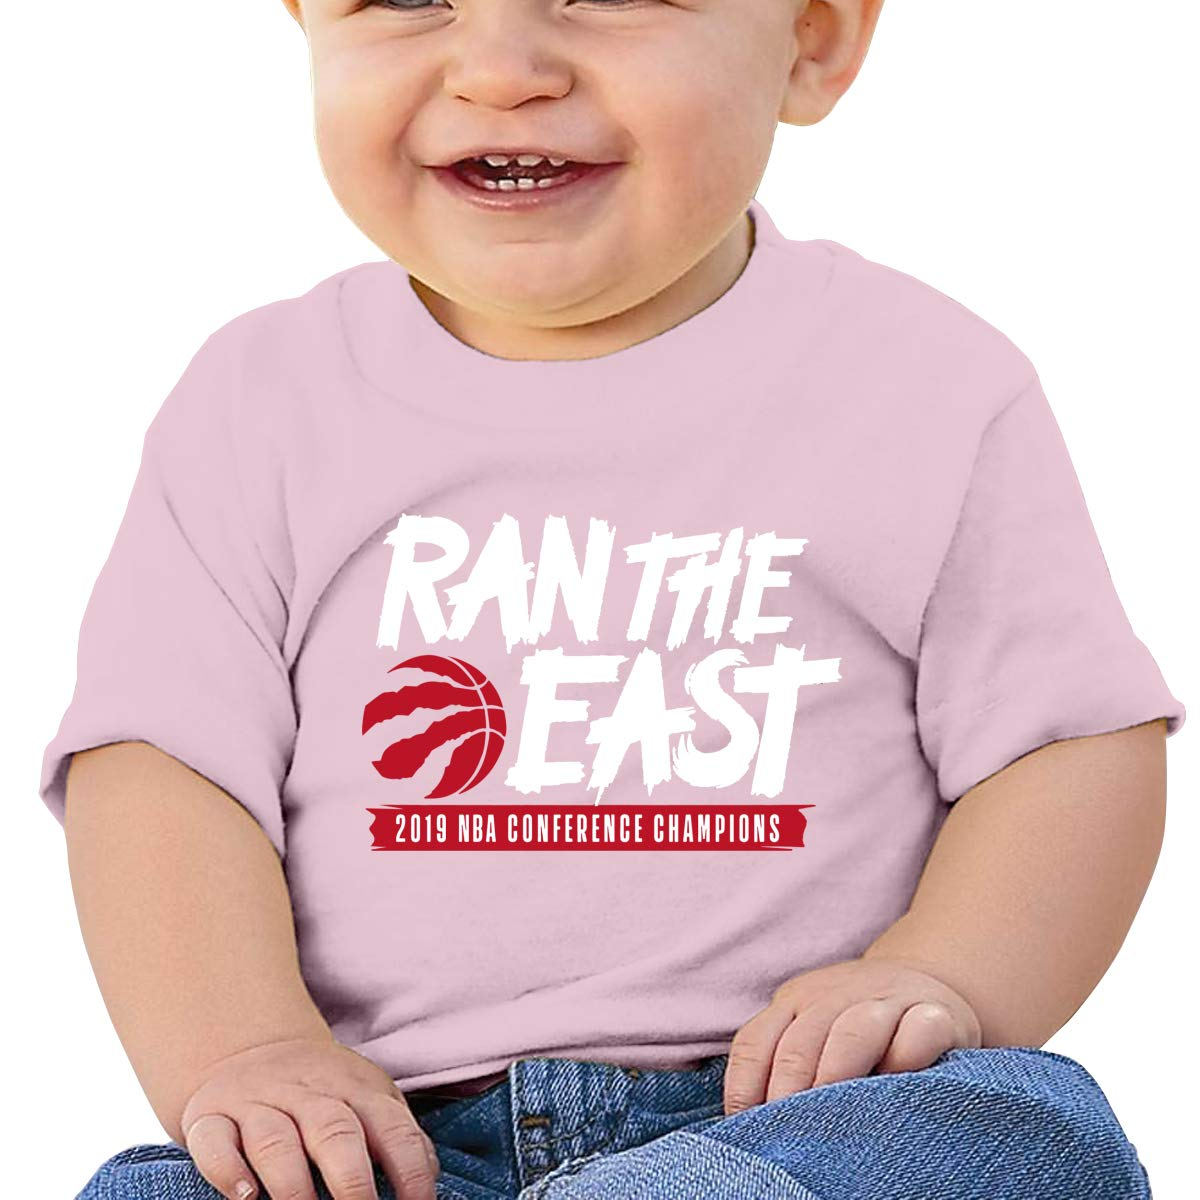 Ran The East Toronto-Raptors Toddler Short-Sleeve Tee for Boy Girl Infant Kids T-Shirt On Newborn 6-18 Months Black